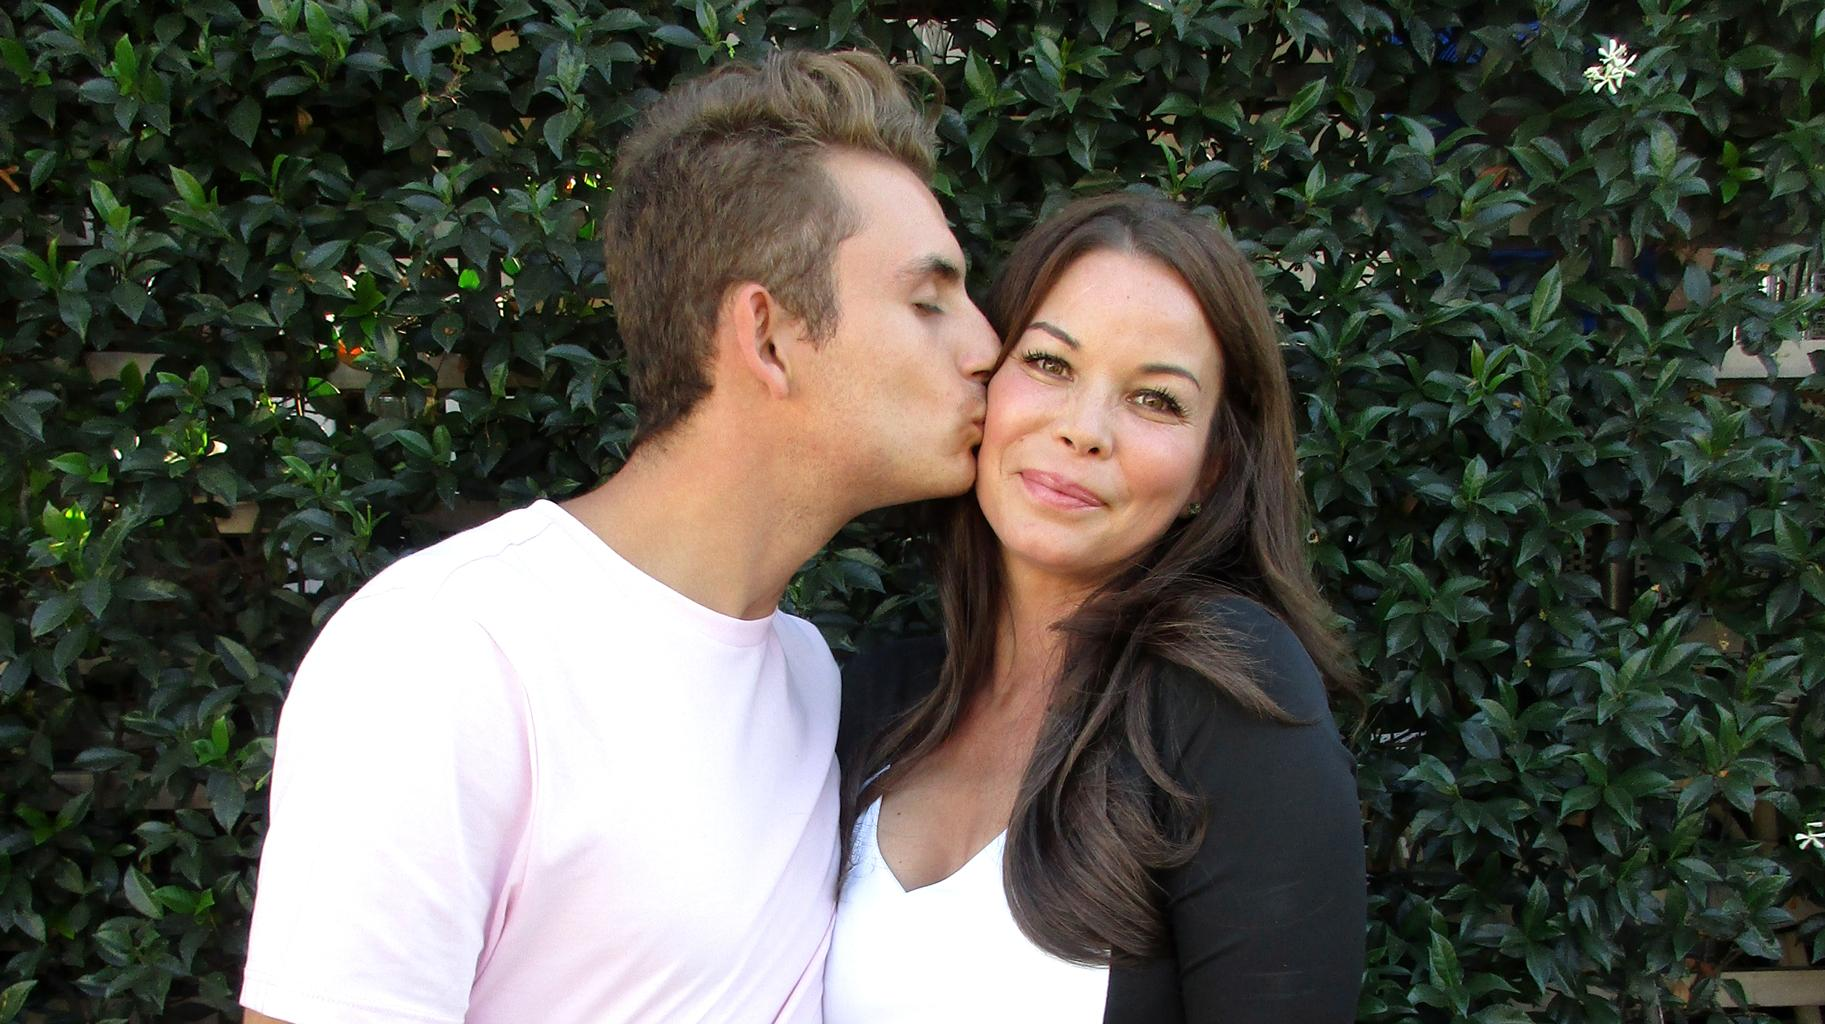 James Kennedy Discusses How His Relationship With His Mom Changed After They Both Became Sober